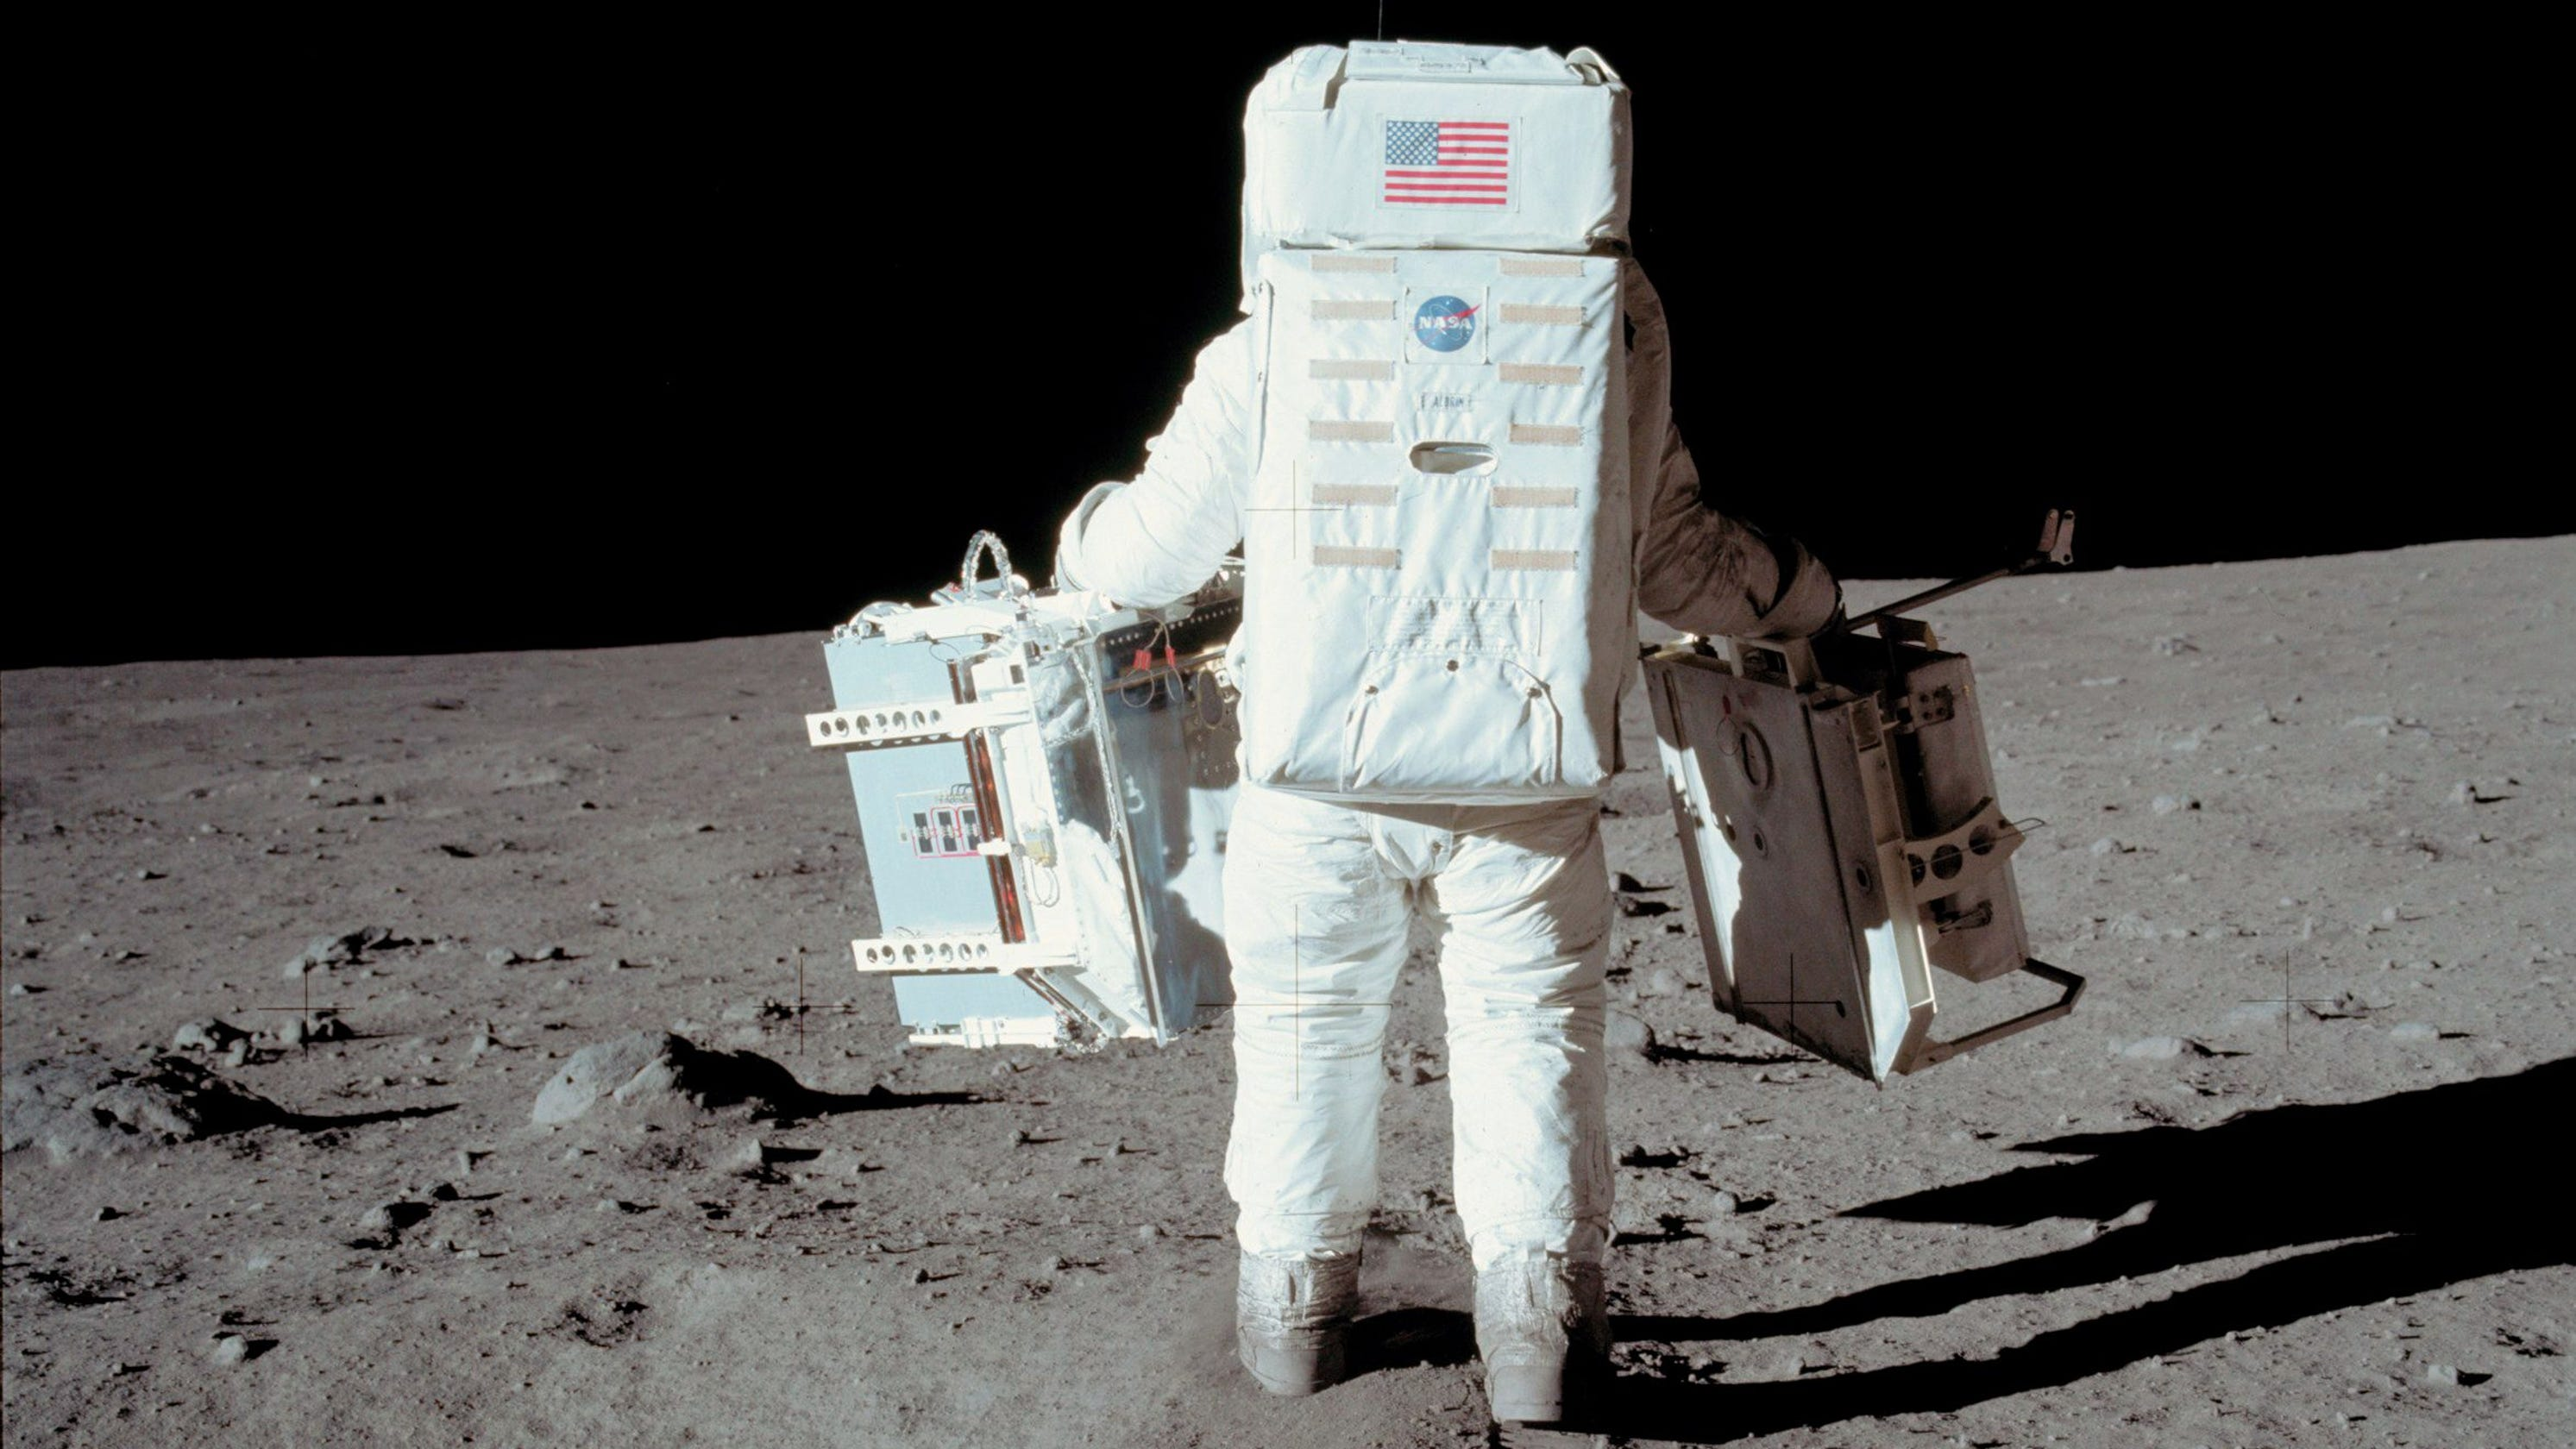 50 years after Apollo 11, don't let space become a landfill for equipment and satellites